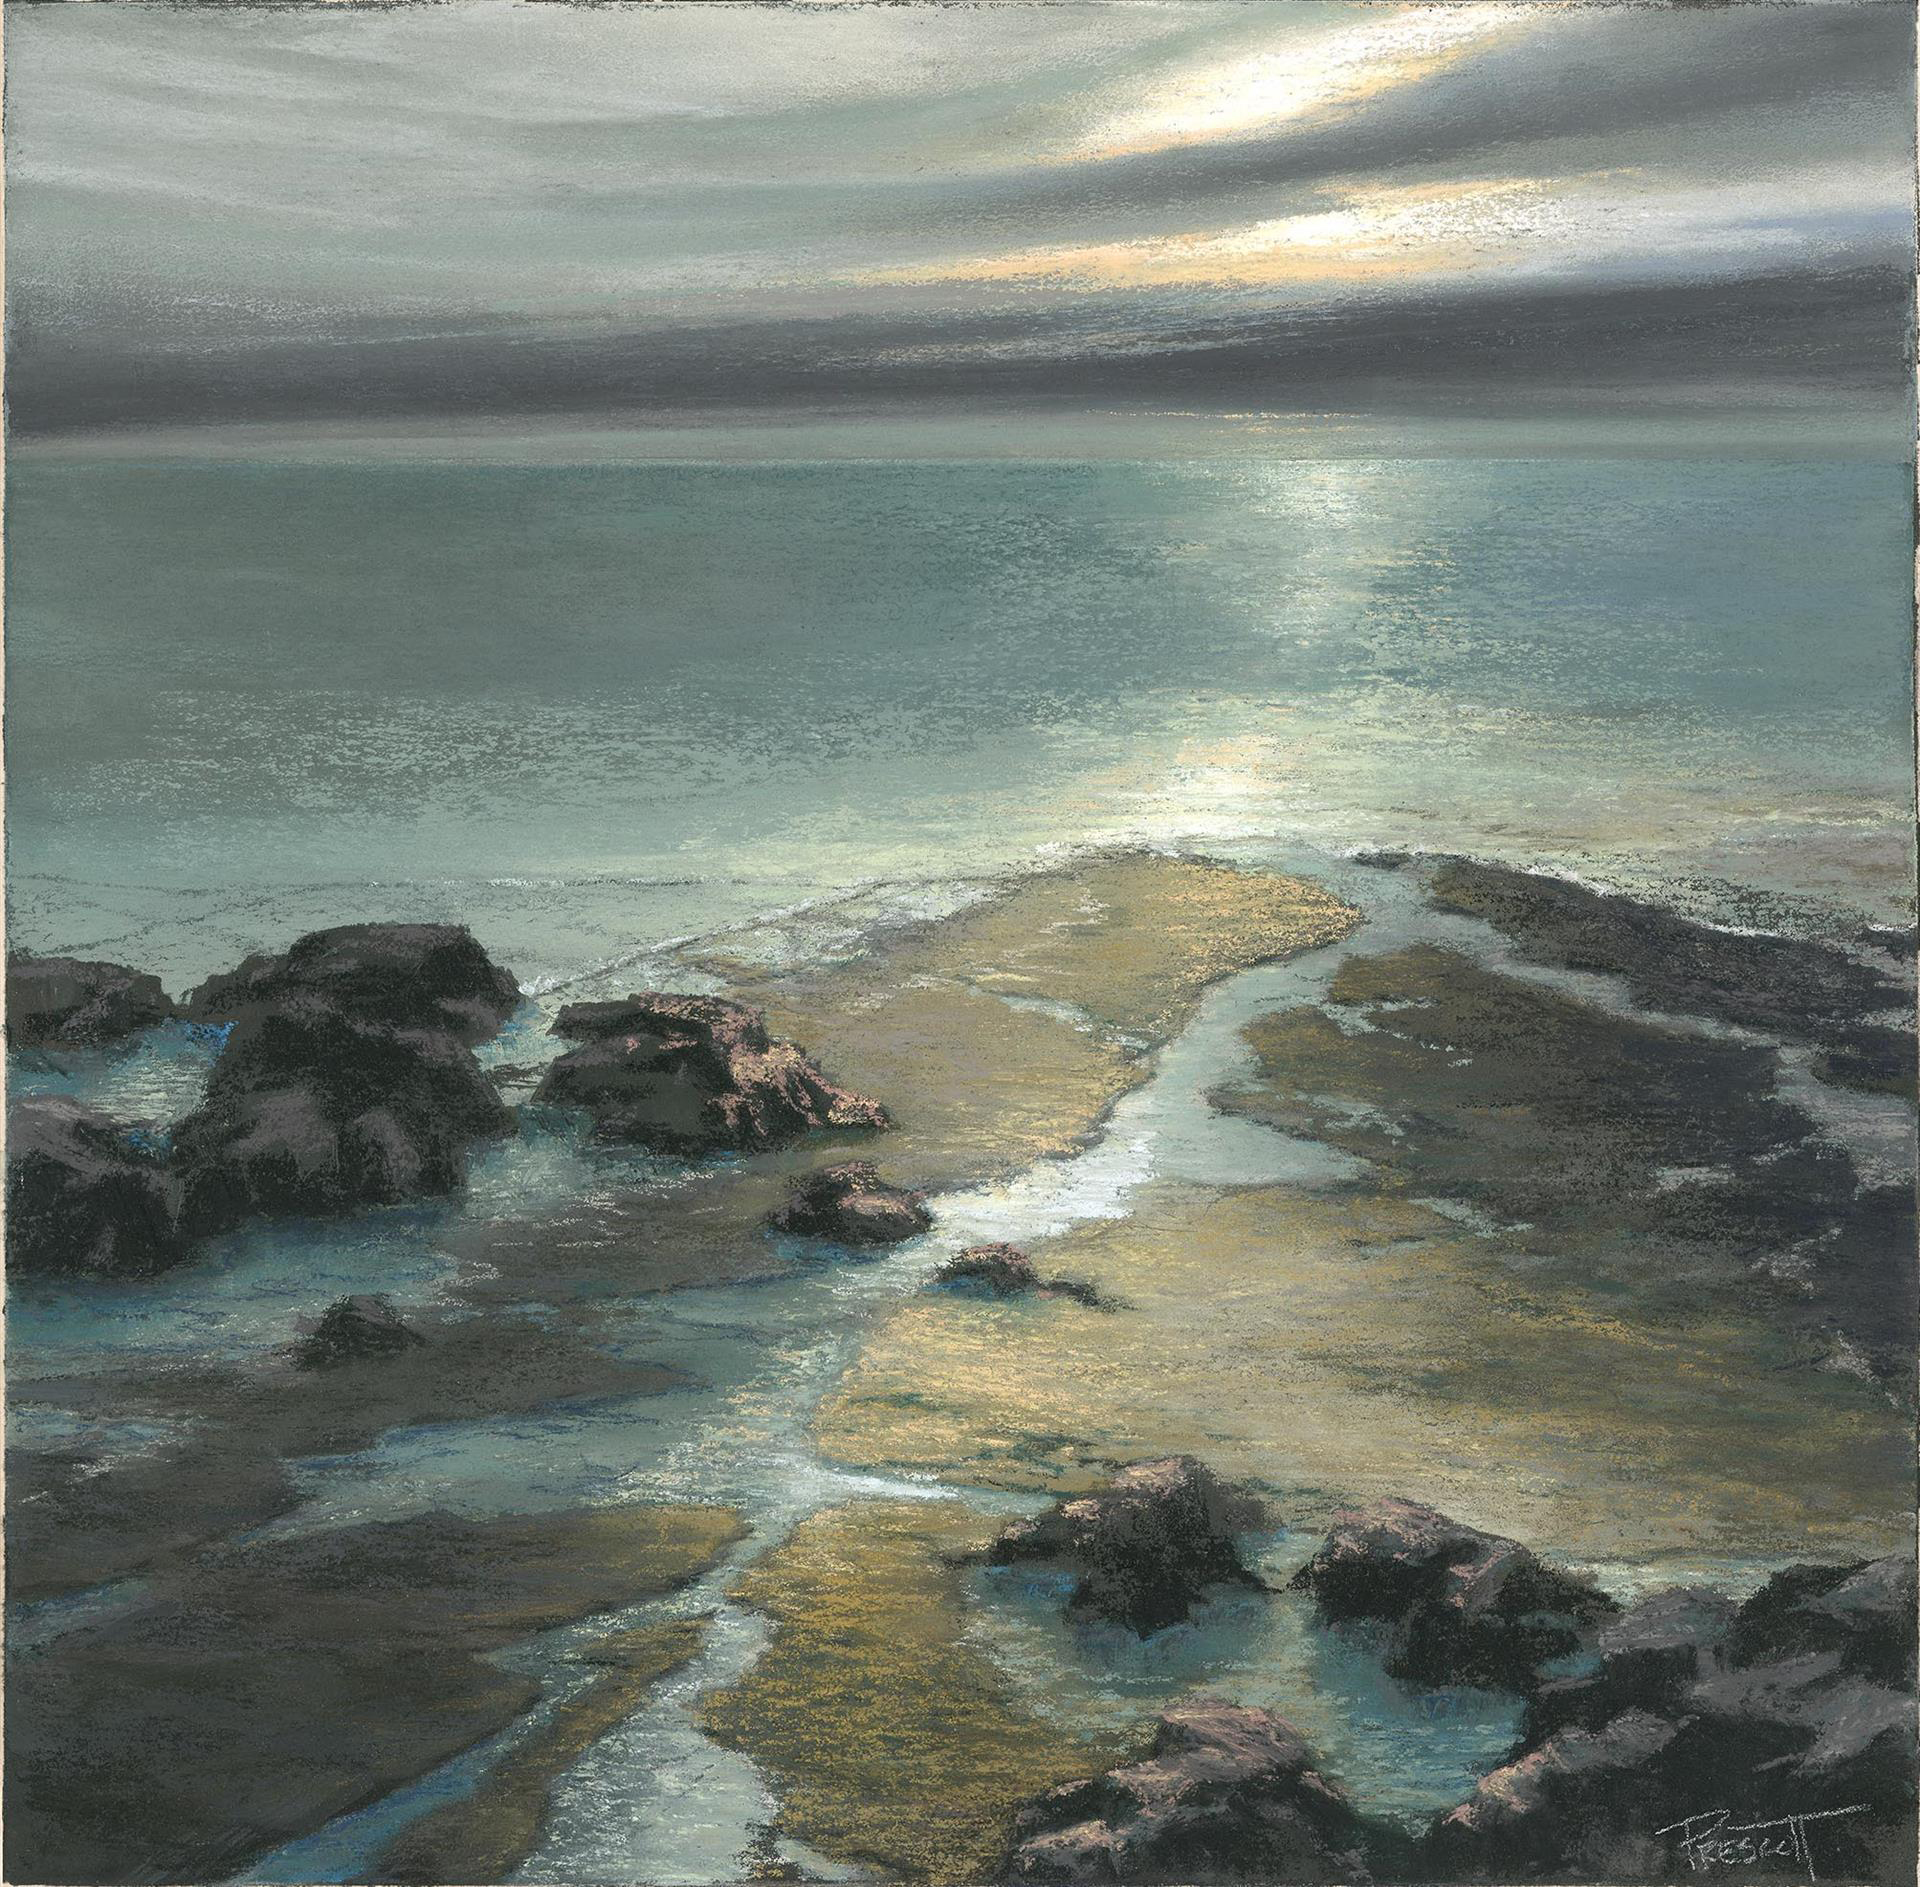 Fading Light: Crystal Cove by Patricia Prescott Sueme